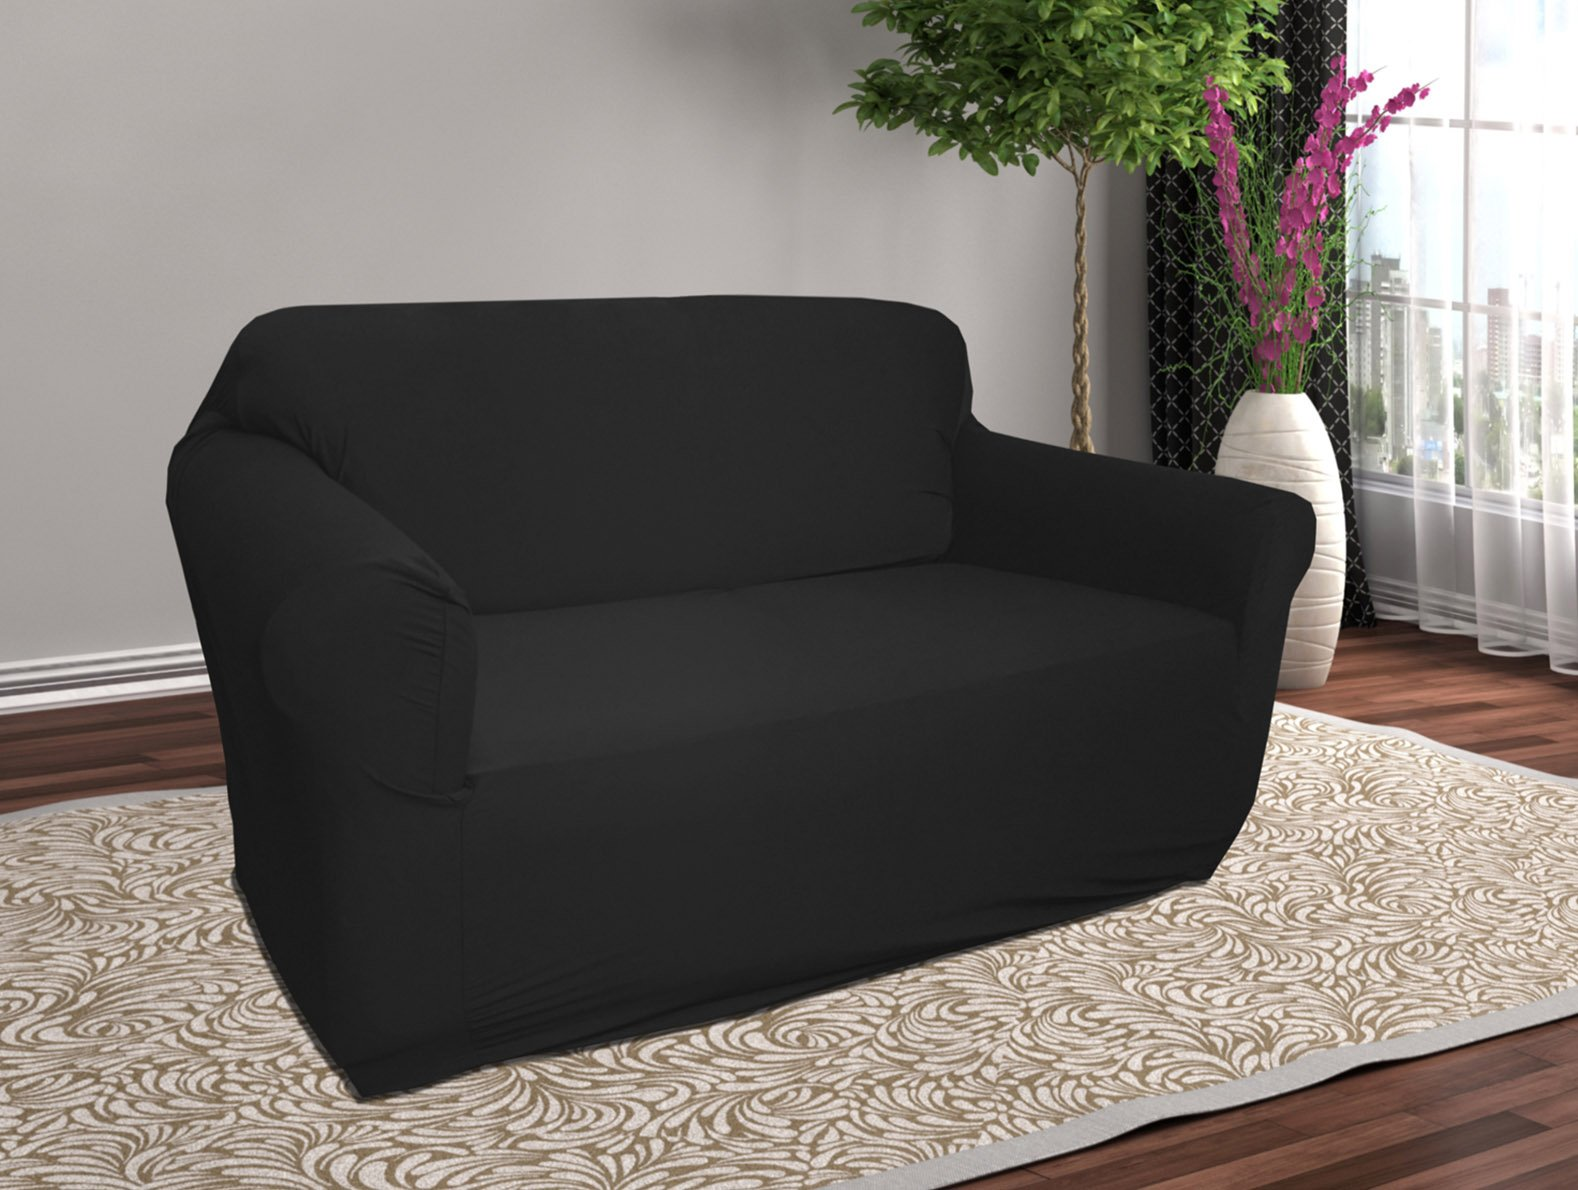 Linen Store Stretch Jersey Slipcover, Soft Form Fitting, Solid Color (LOVESEAT, BLACK)